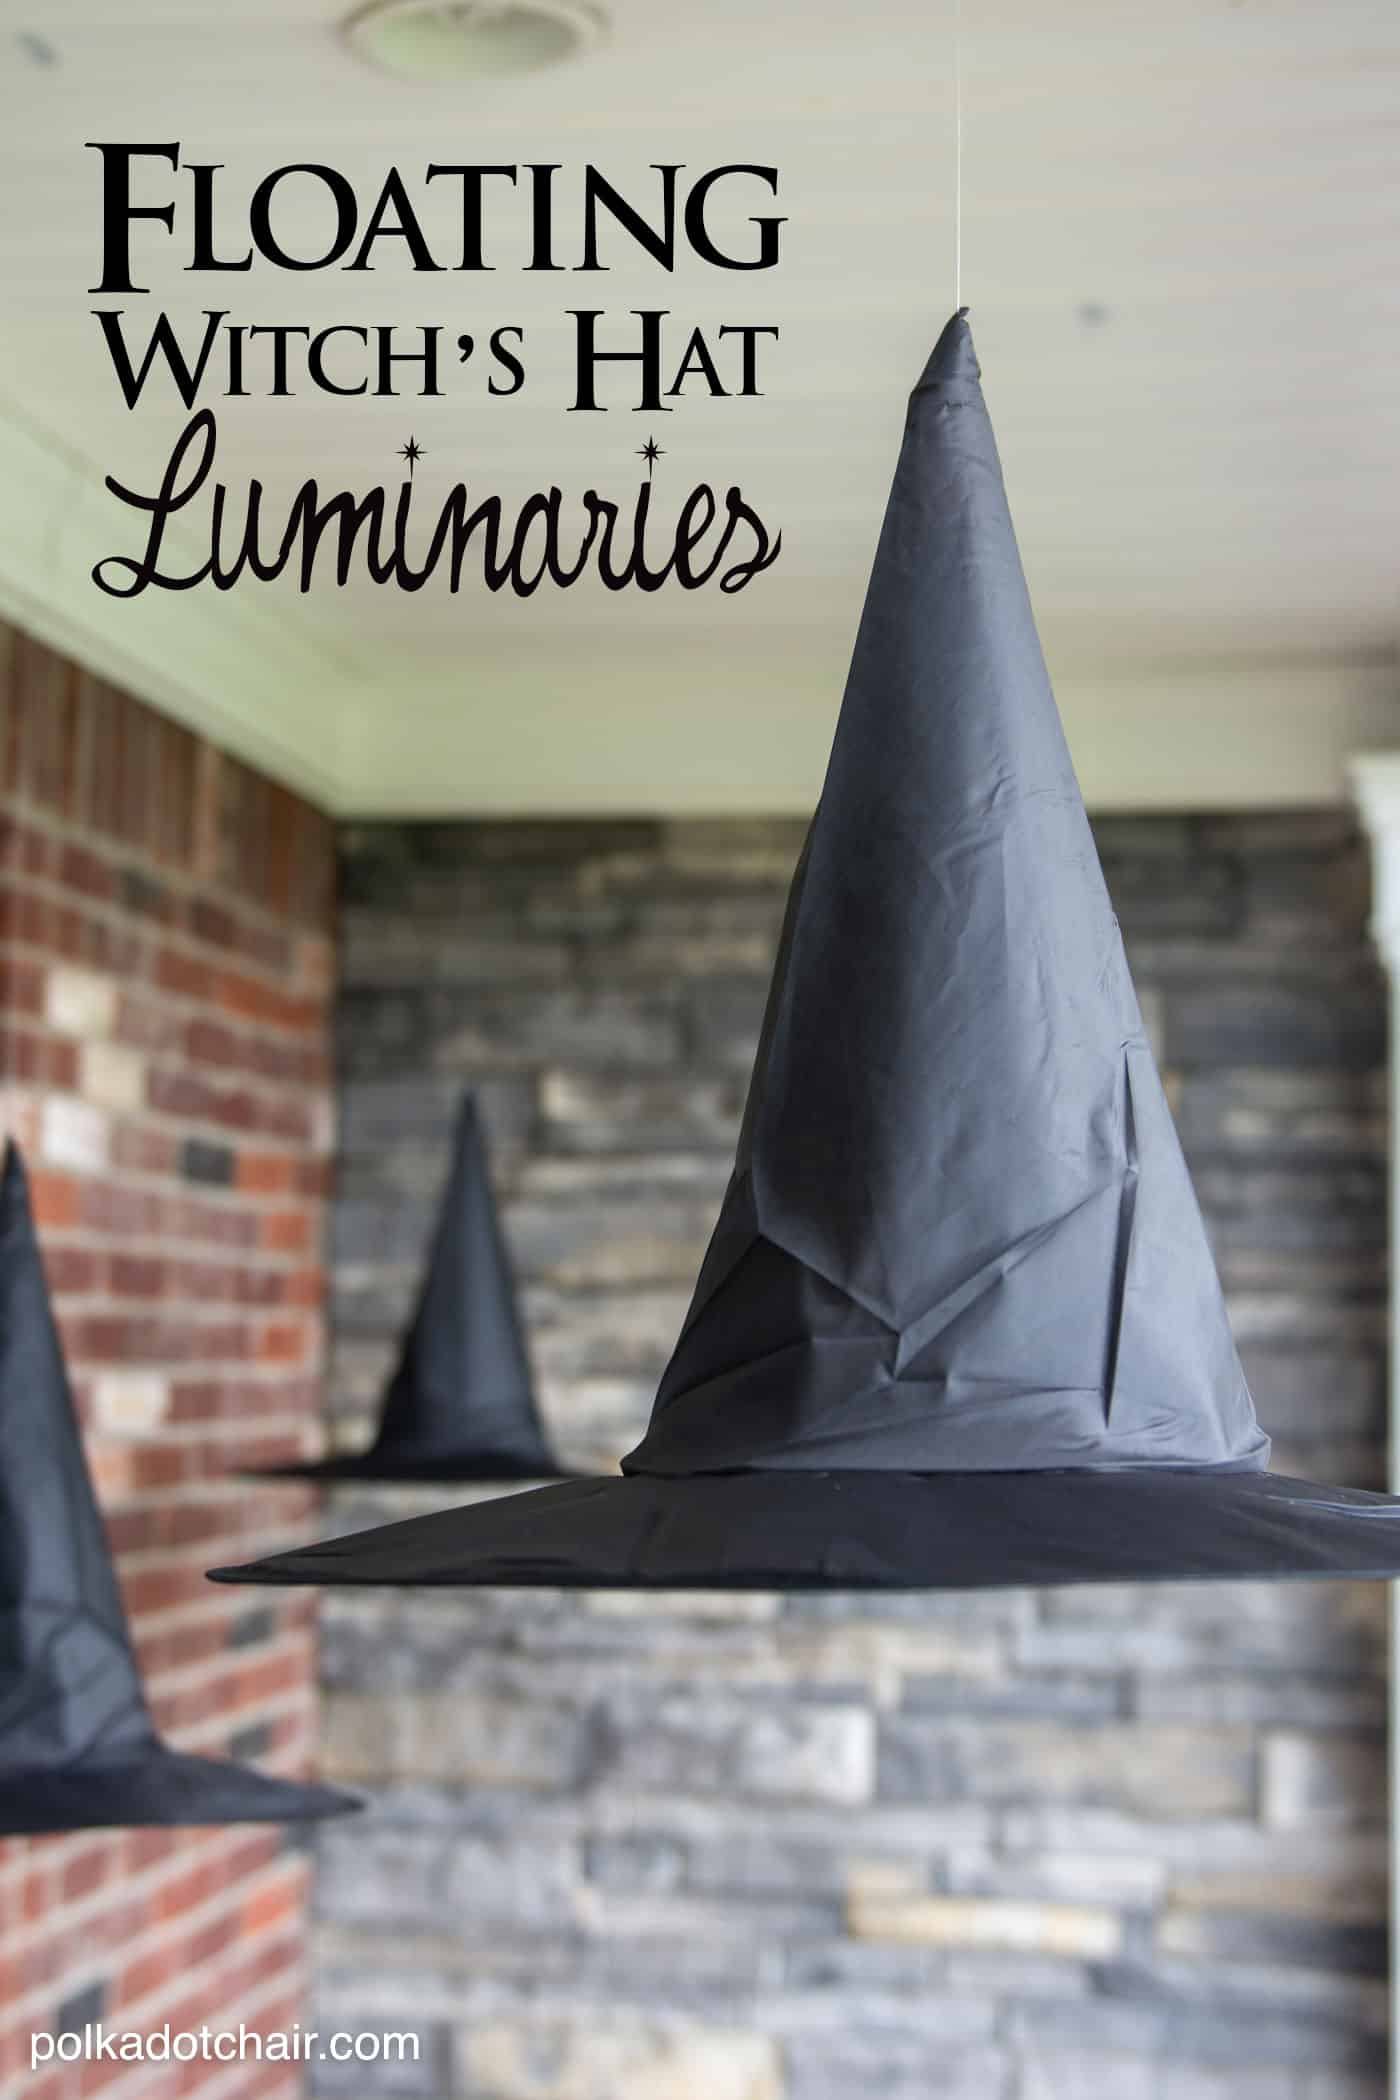 Halloween decorations - Floating witch's hat luminaries - three witches hats on hanging from a porch ceiling